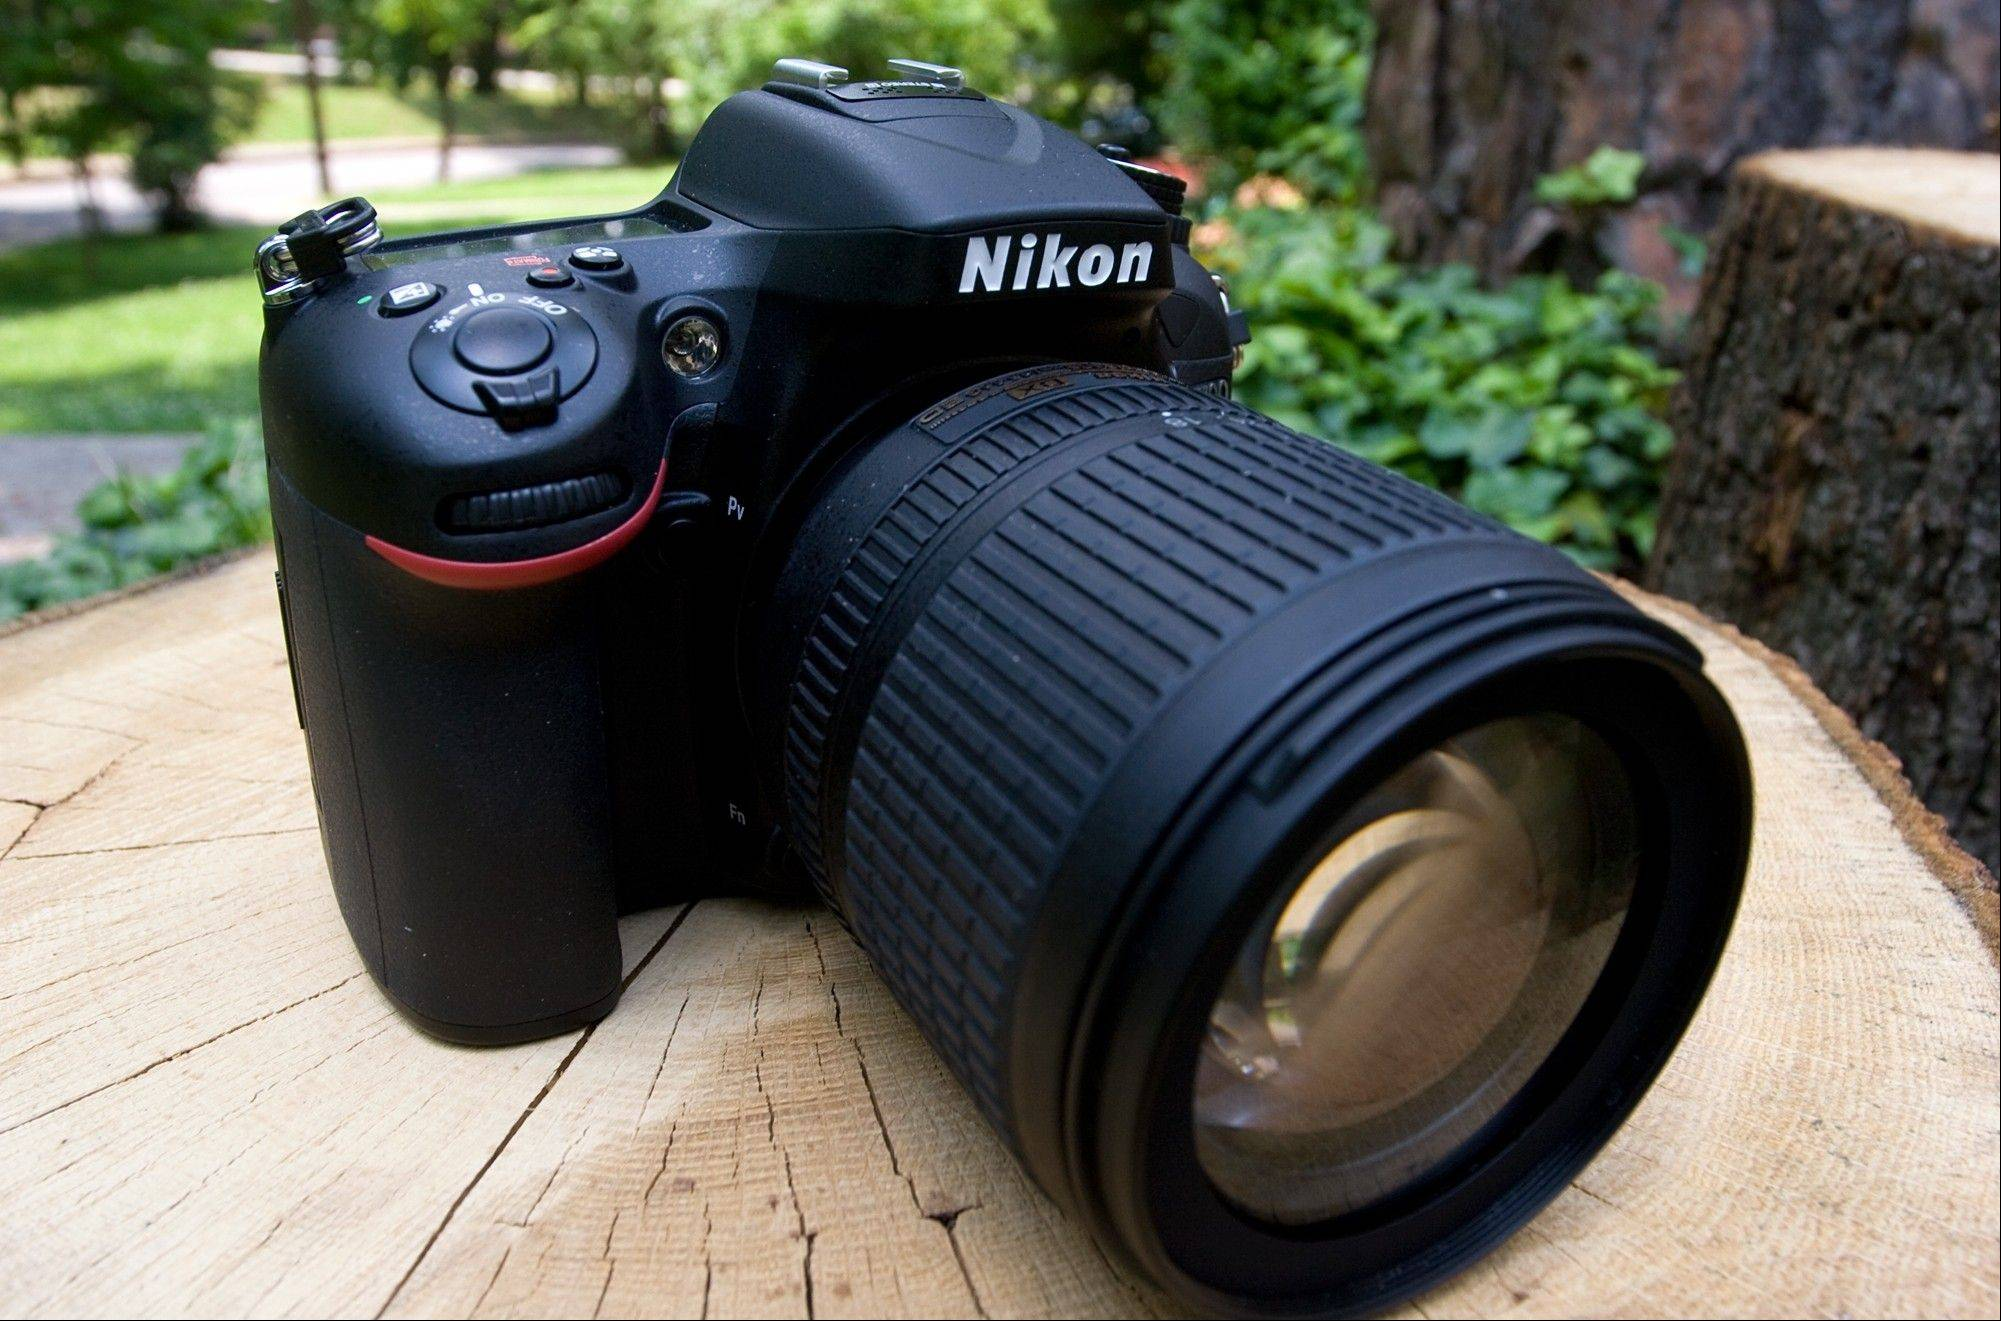 The Nikon D7100 is a 24-megapixel DSLR that can shoot high-definition video.